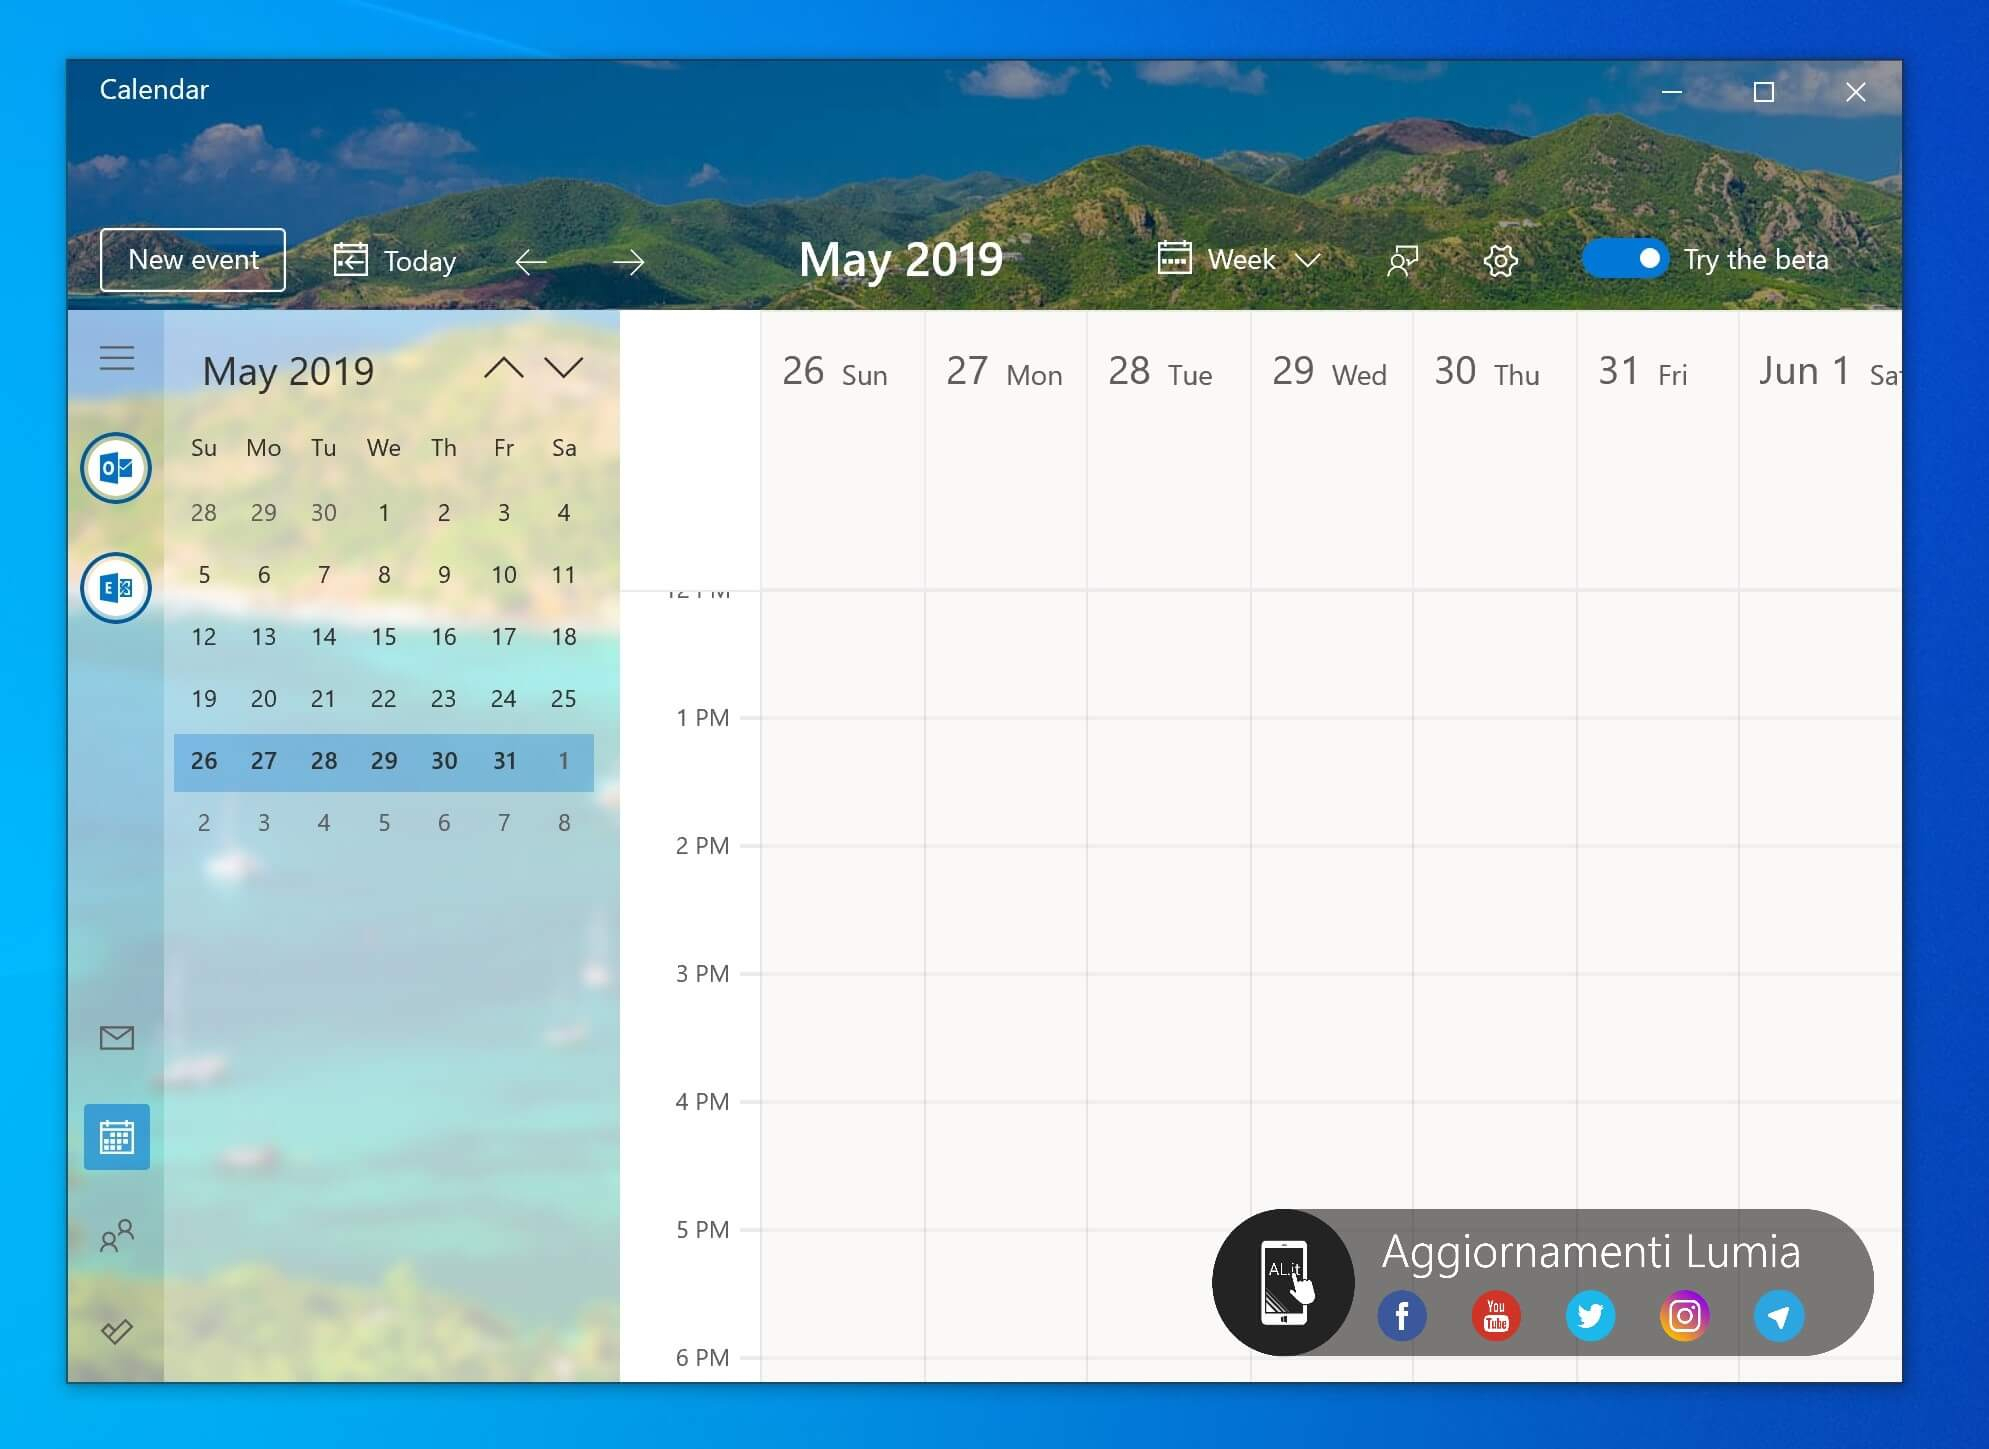 Windows 10 Calendar Receives New, Beautiful Ui